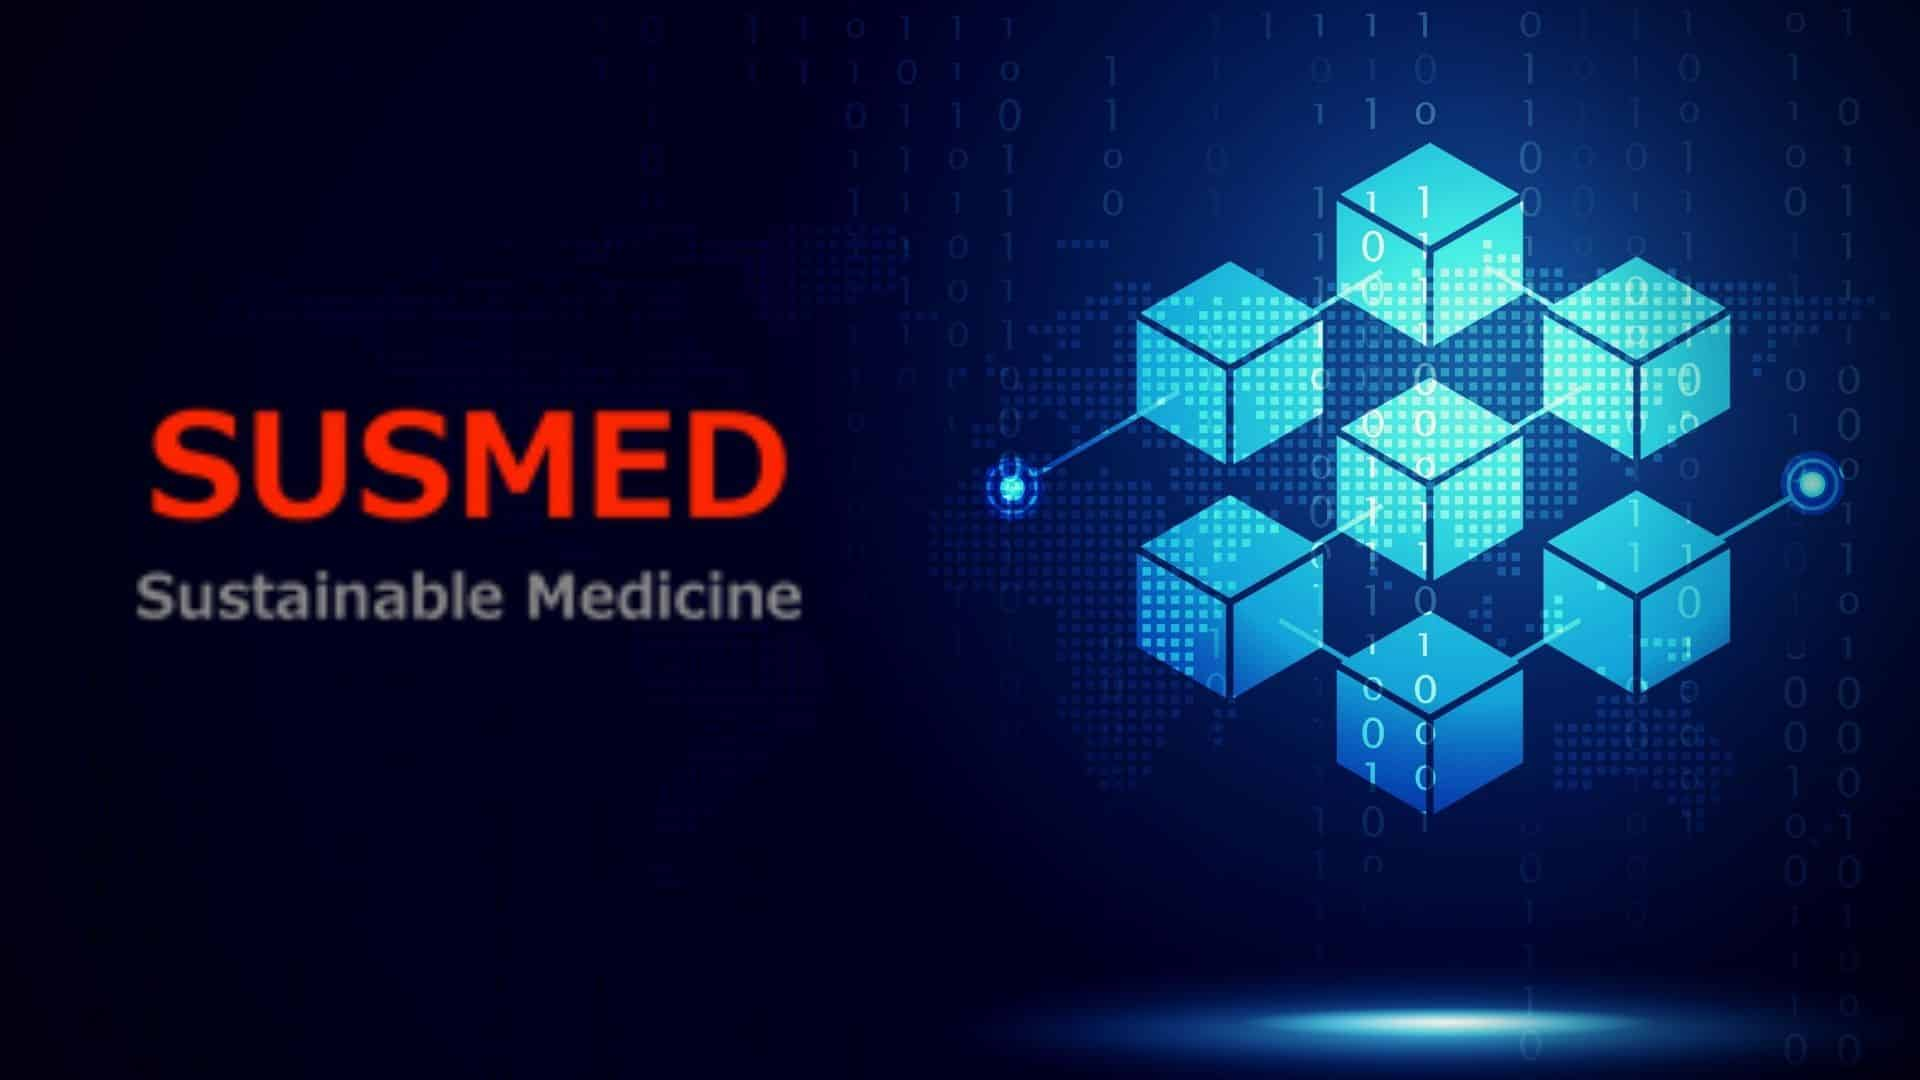 SUSMED Optimizes Clinical Trials with Blockchain Technology